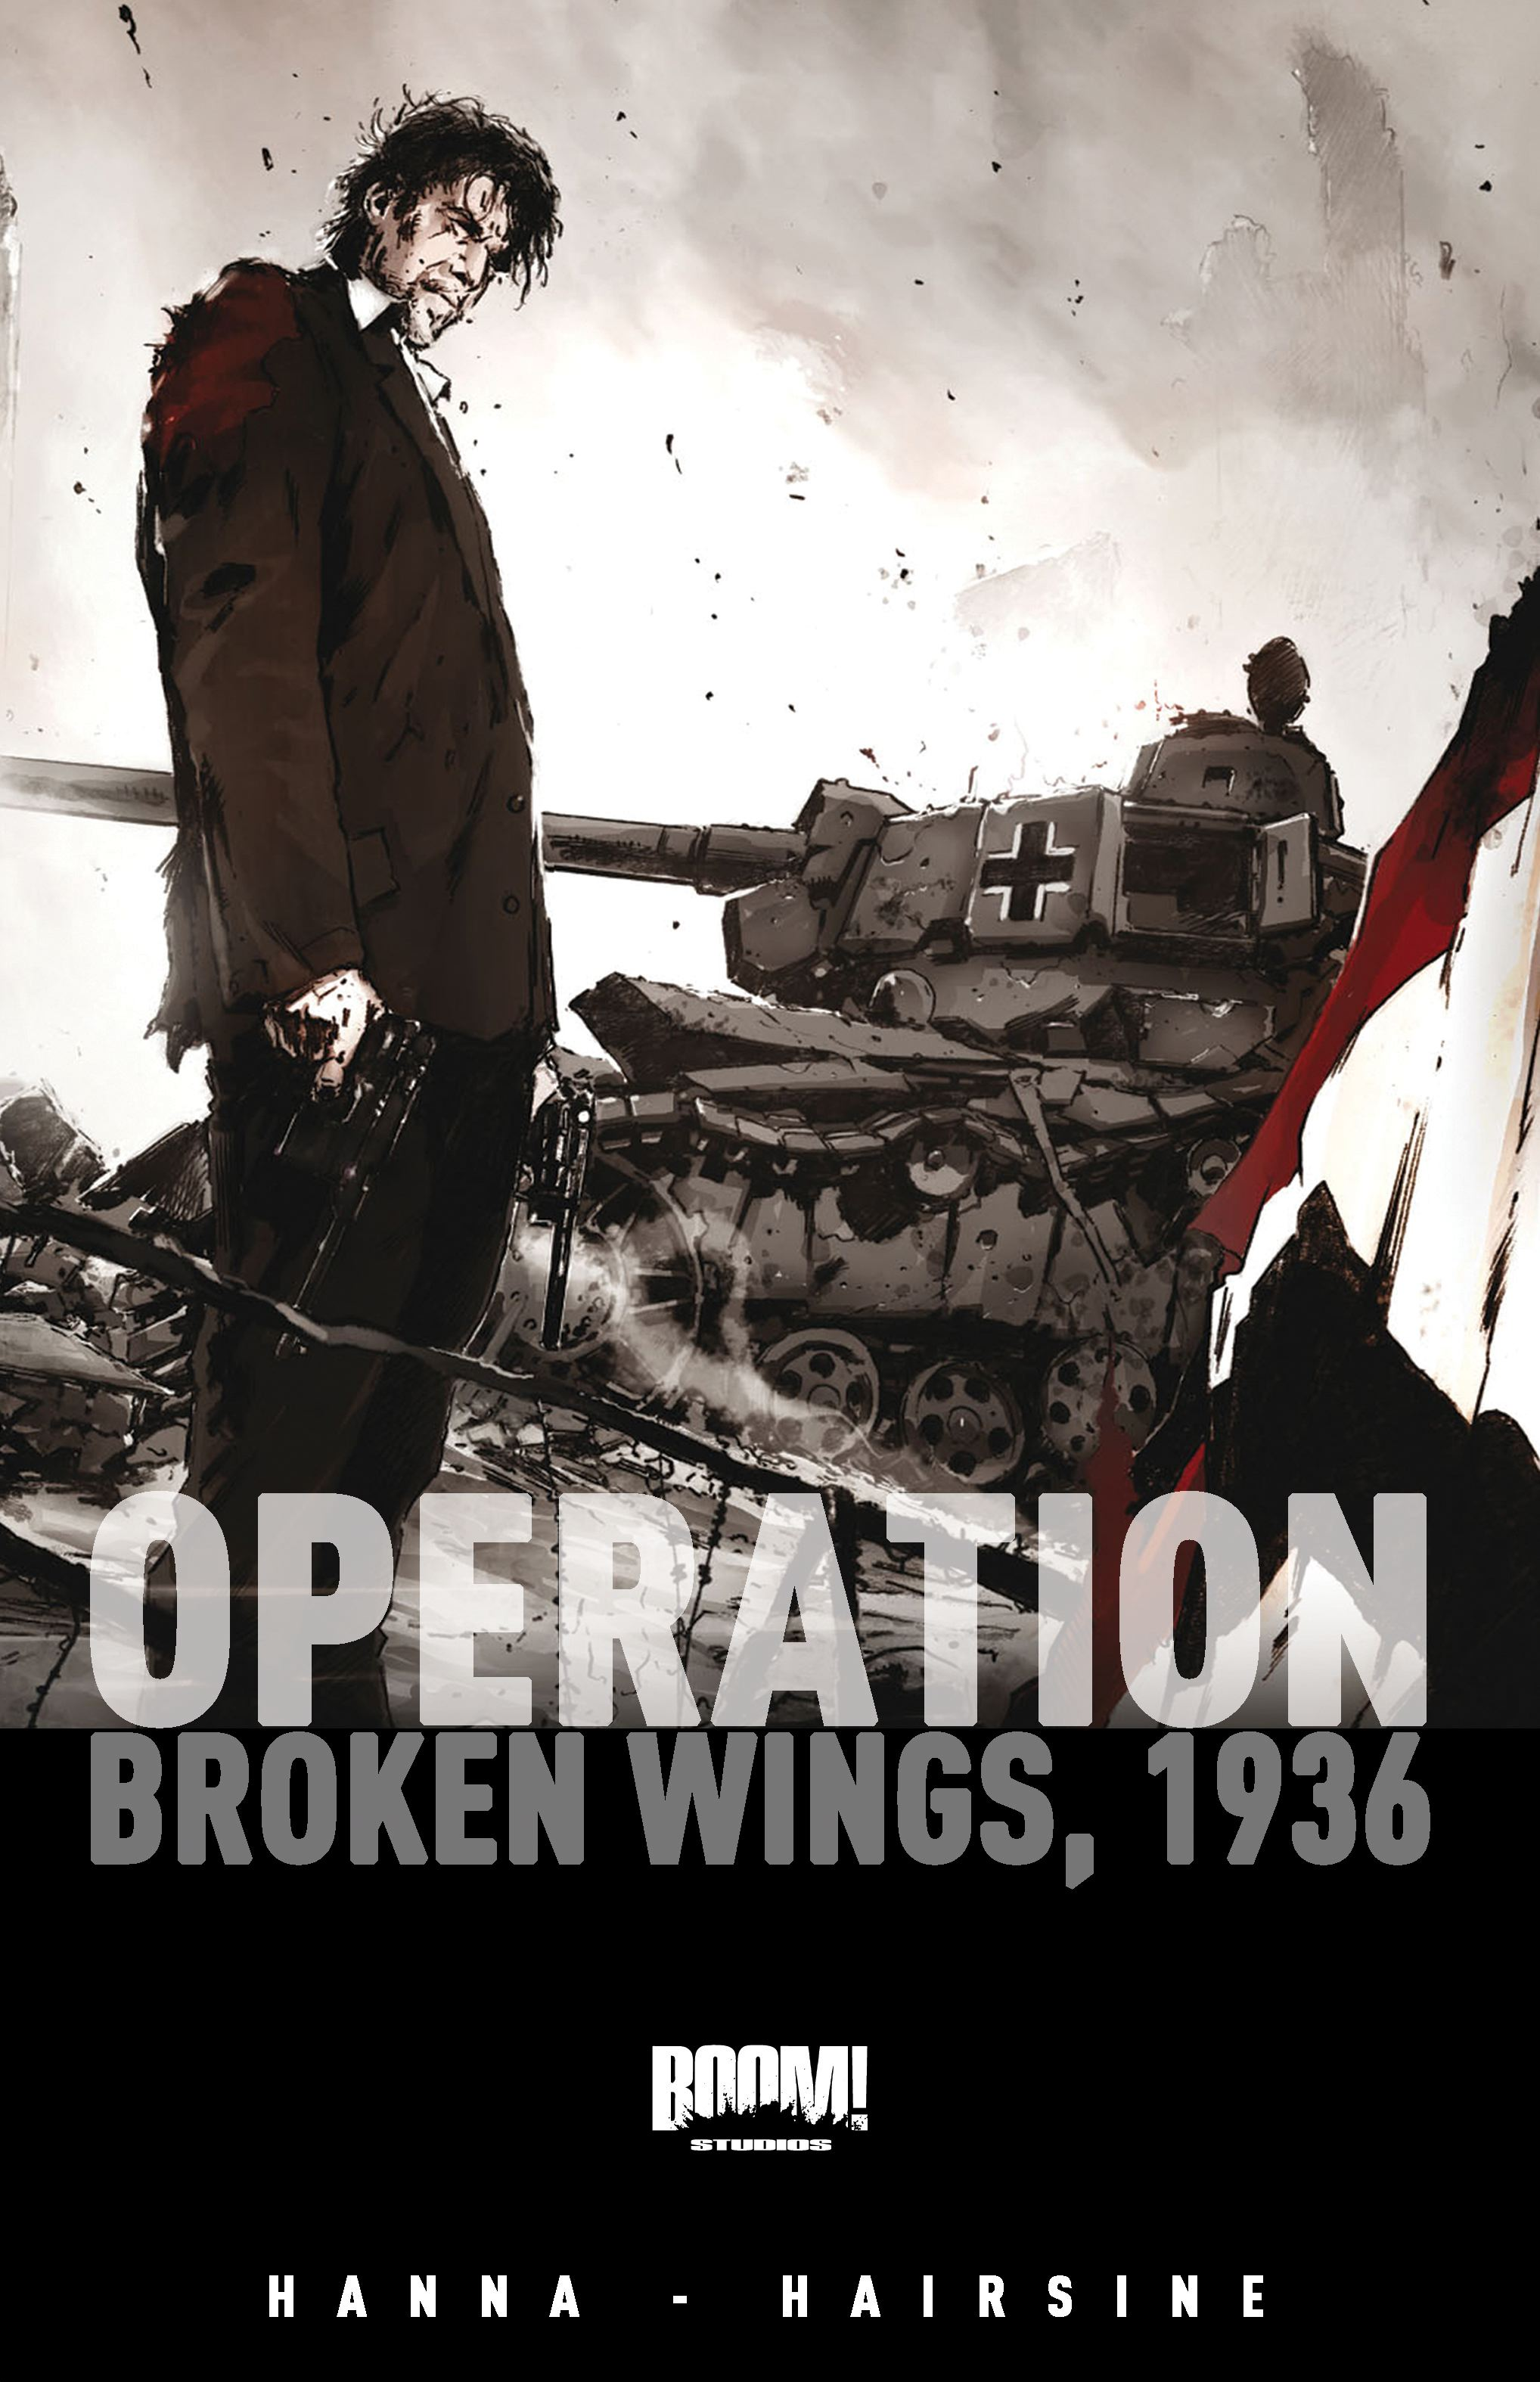 Operation broken wings 1936 9781608862672 hr